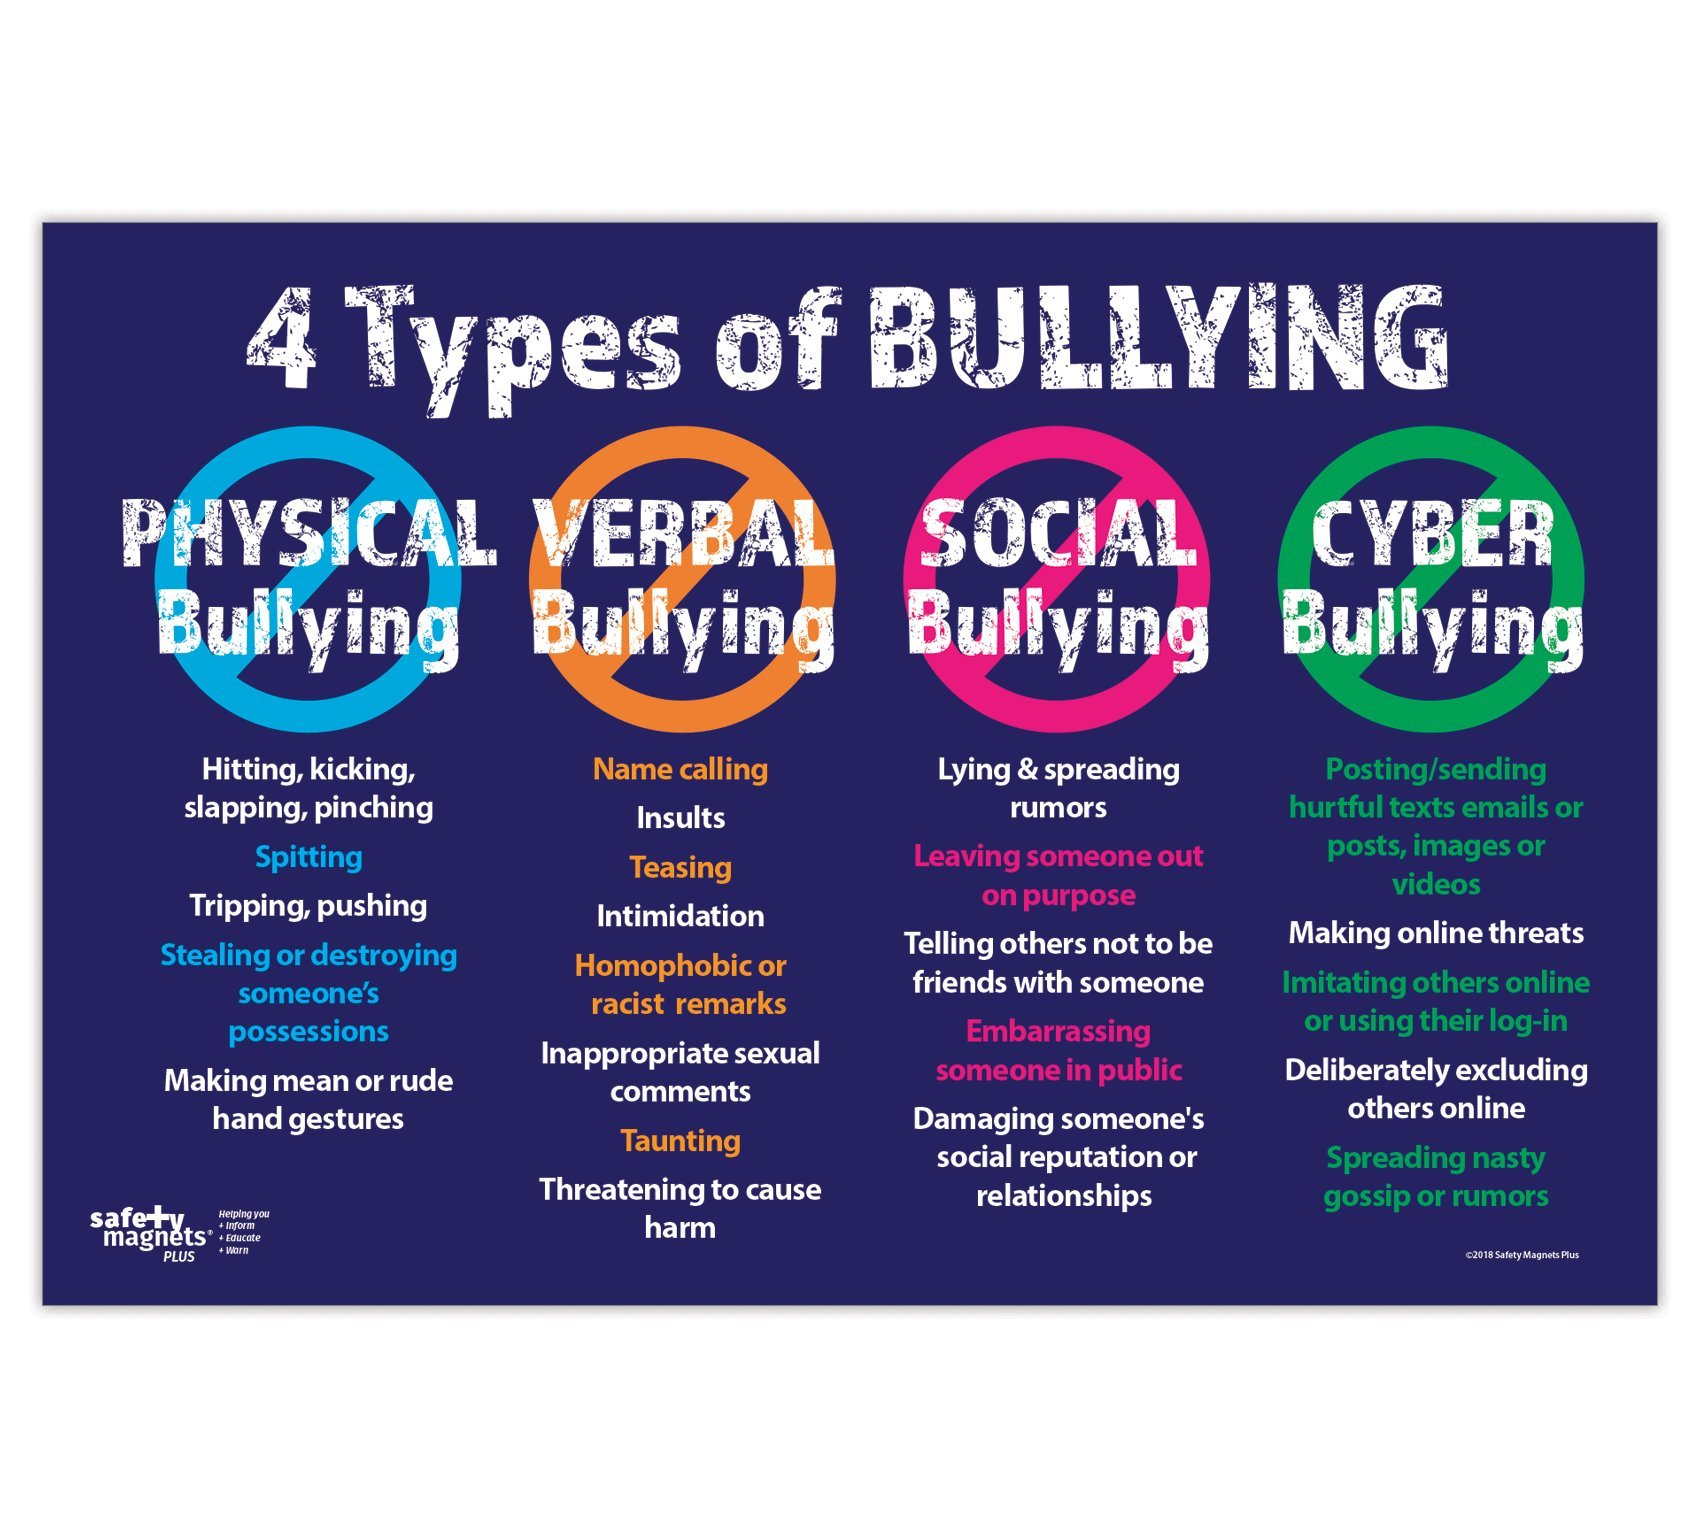 Anti Bullying Poster - The 4 Types: Physical, Verbal, Social and Cyber - 12 x 18 inches - Non-Laminated